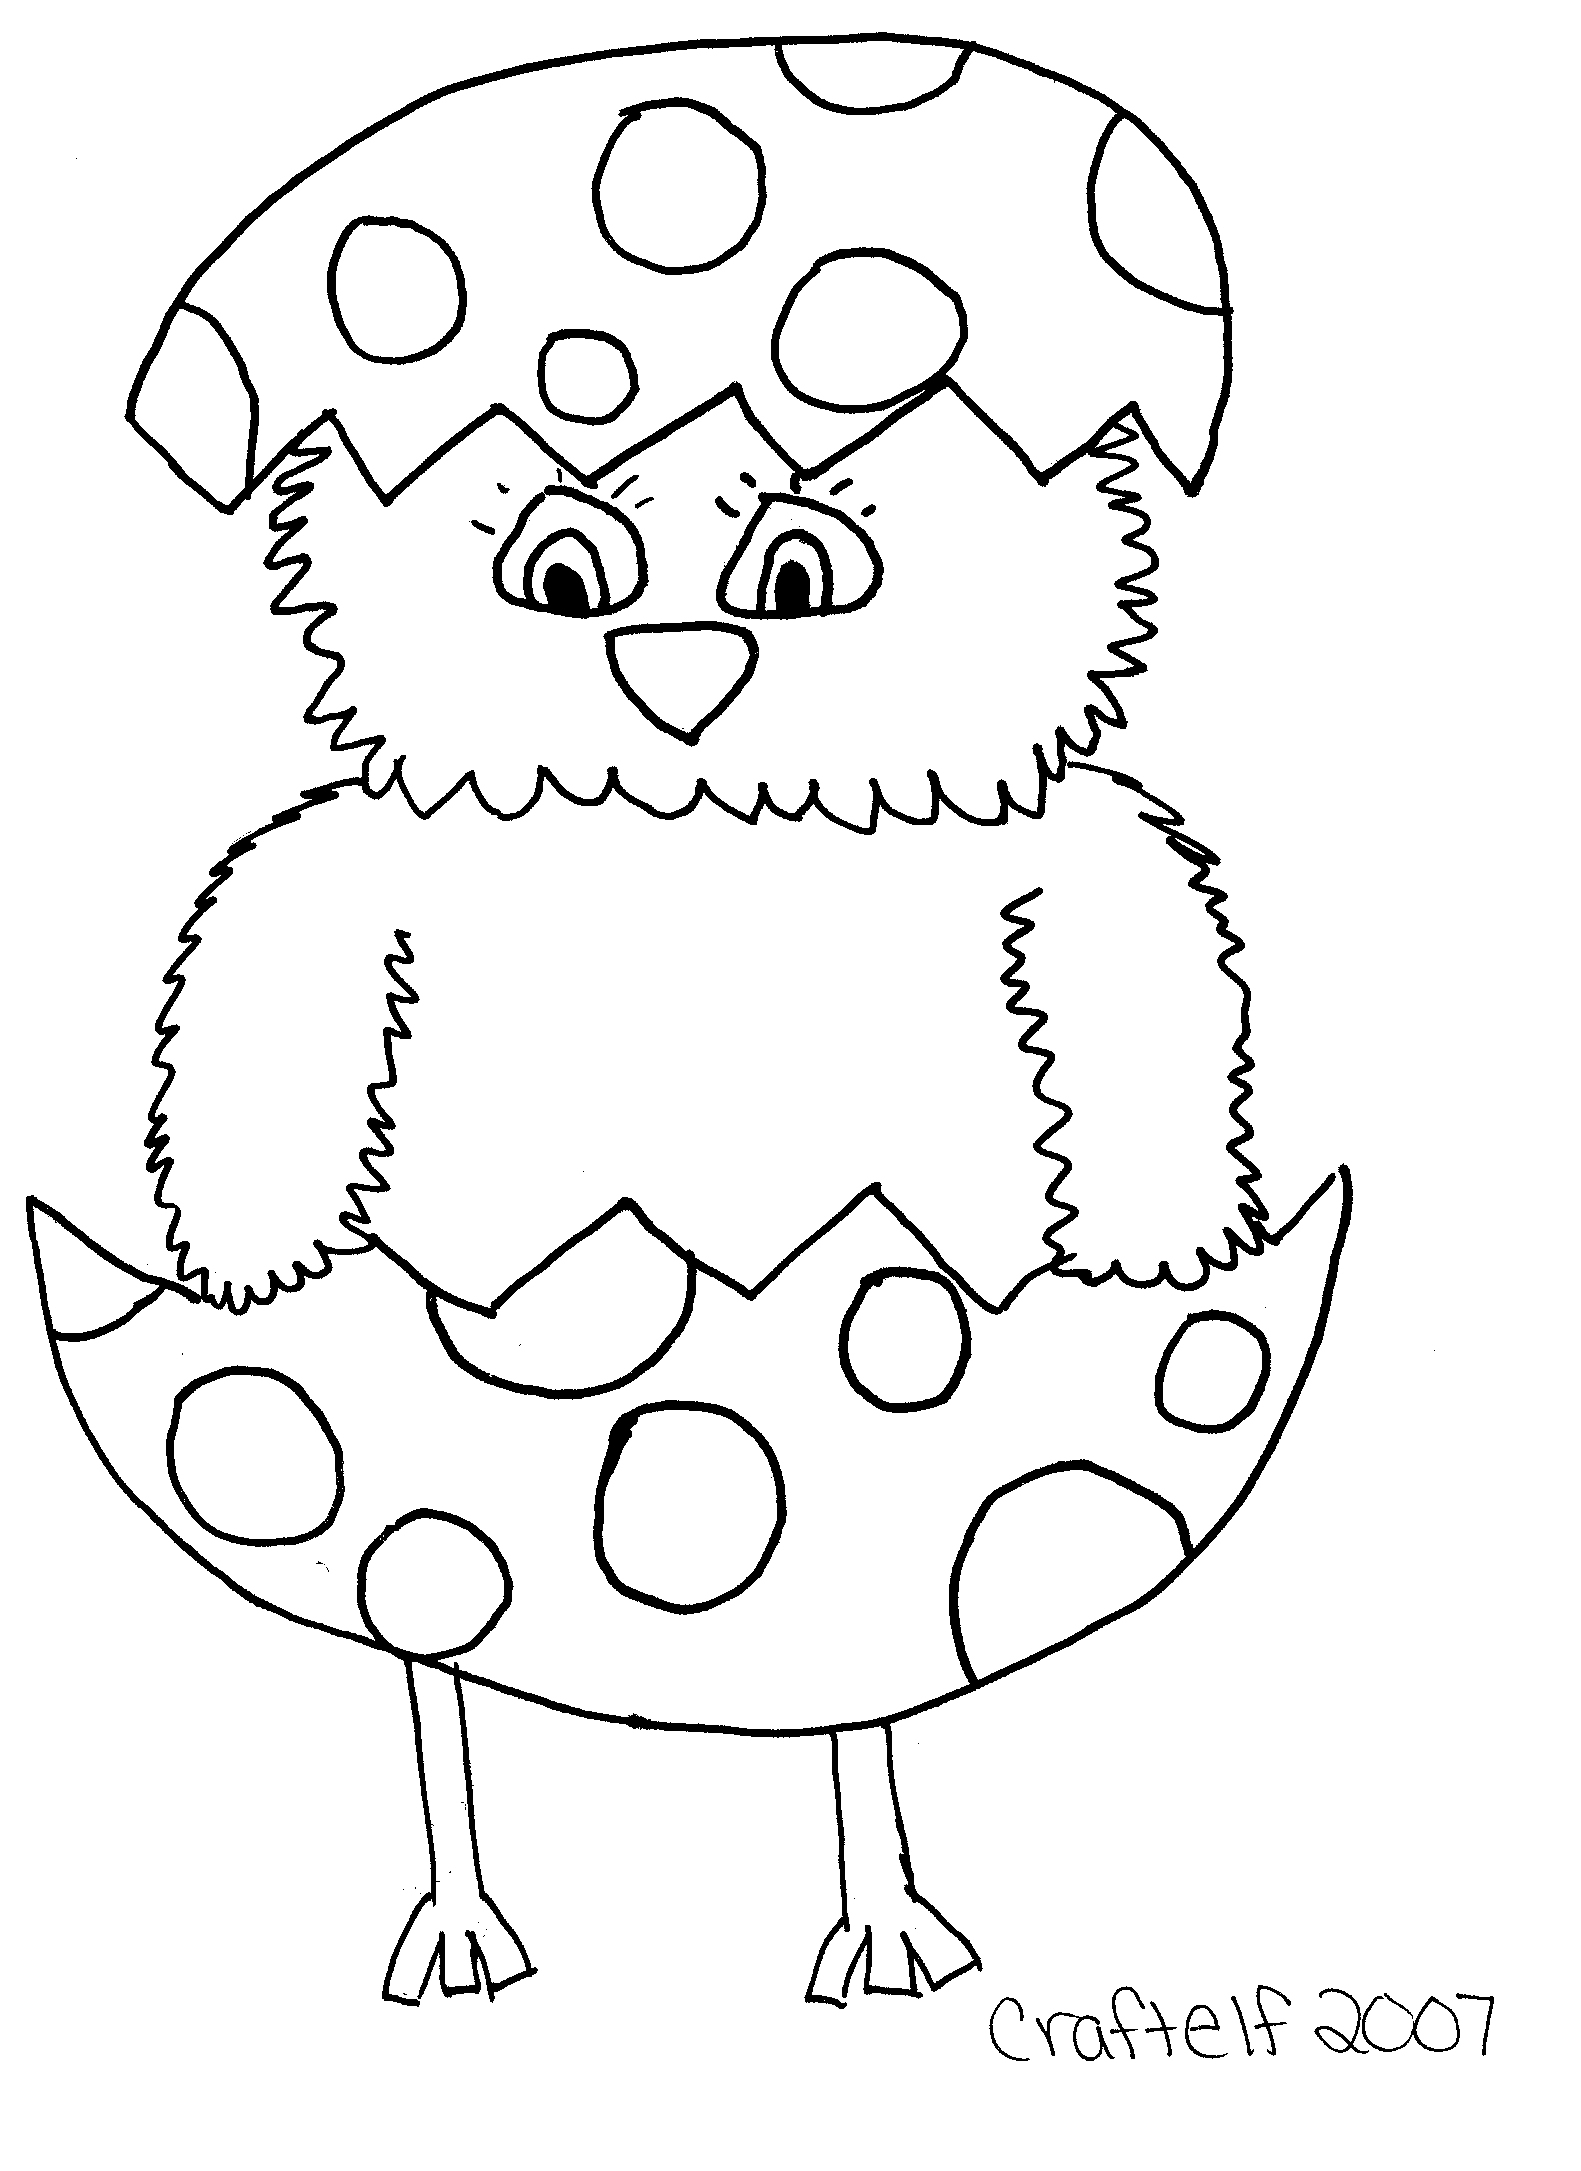 Coloring Pages : Religeous Easter Coloring Pages Printable Free For - Free Printable Easter Pages